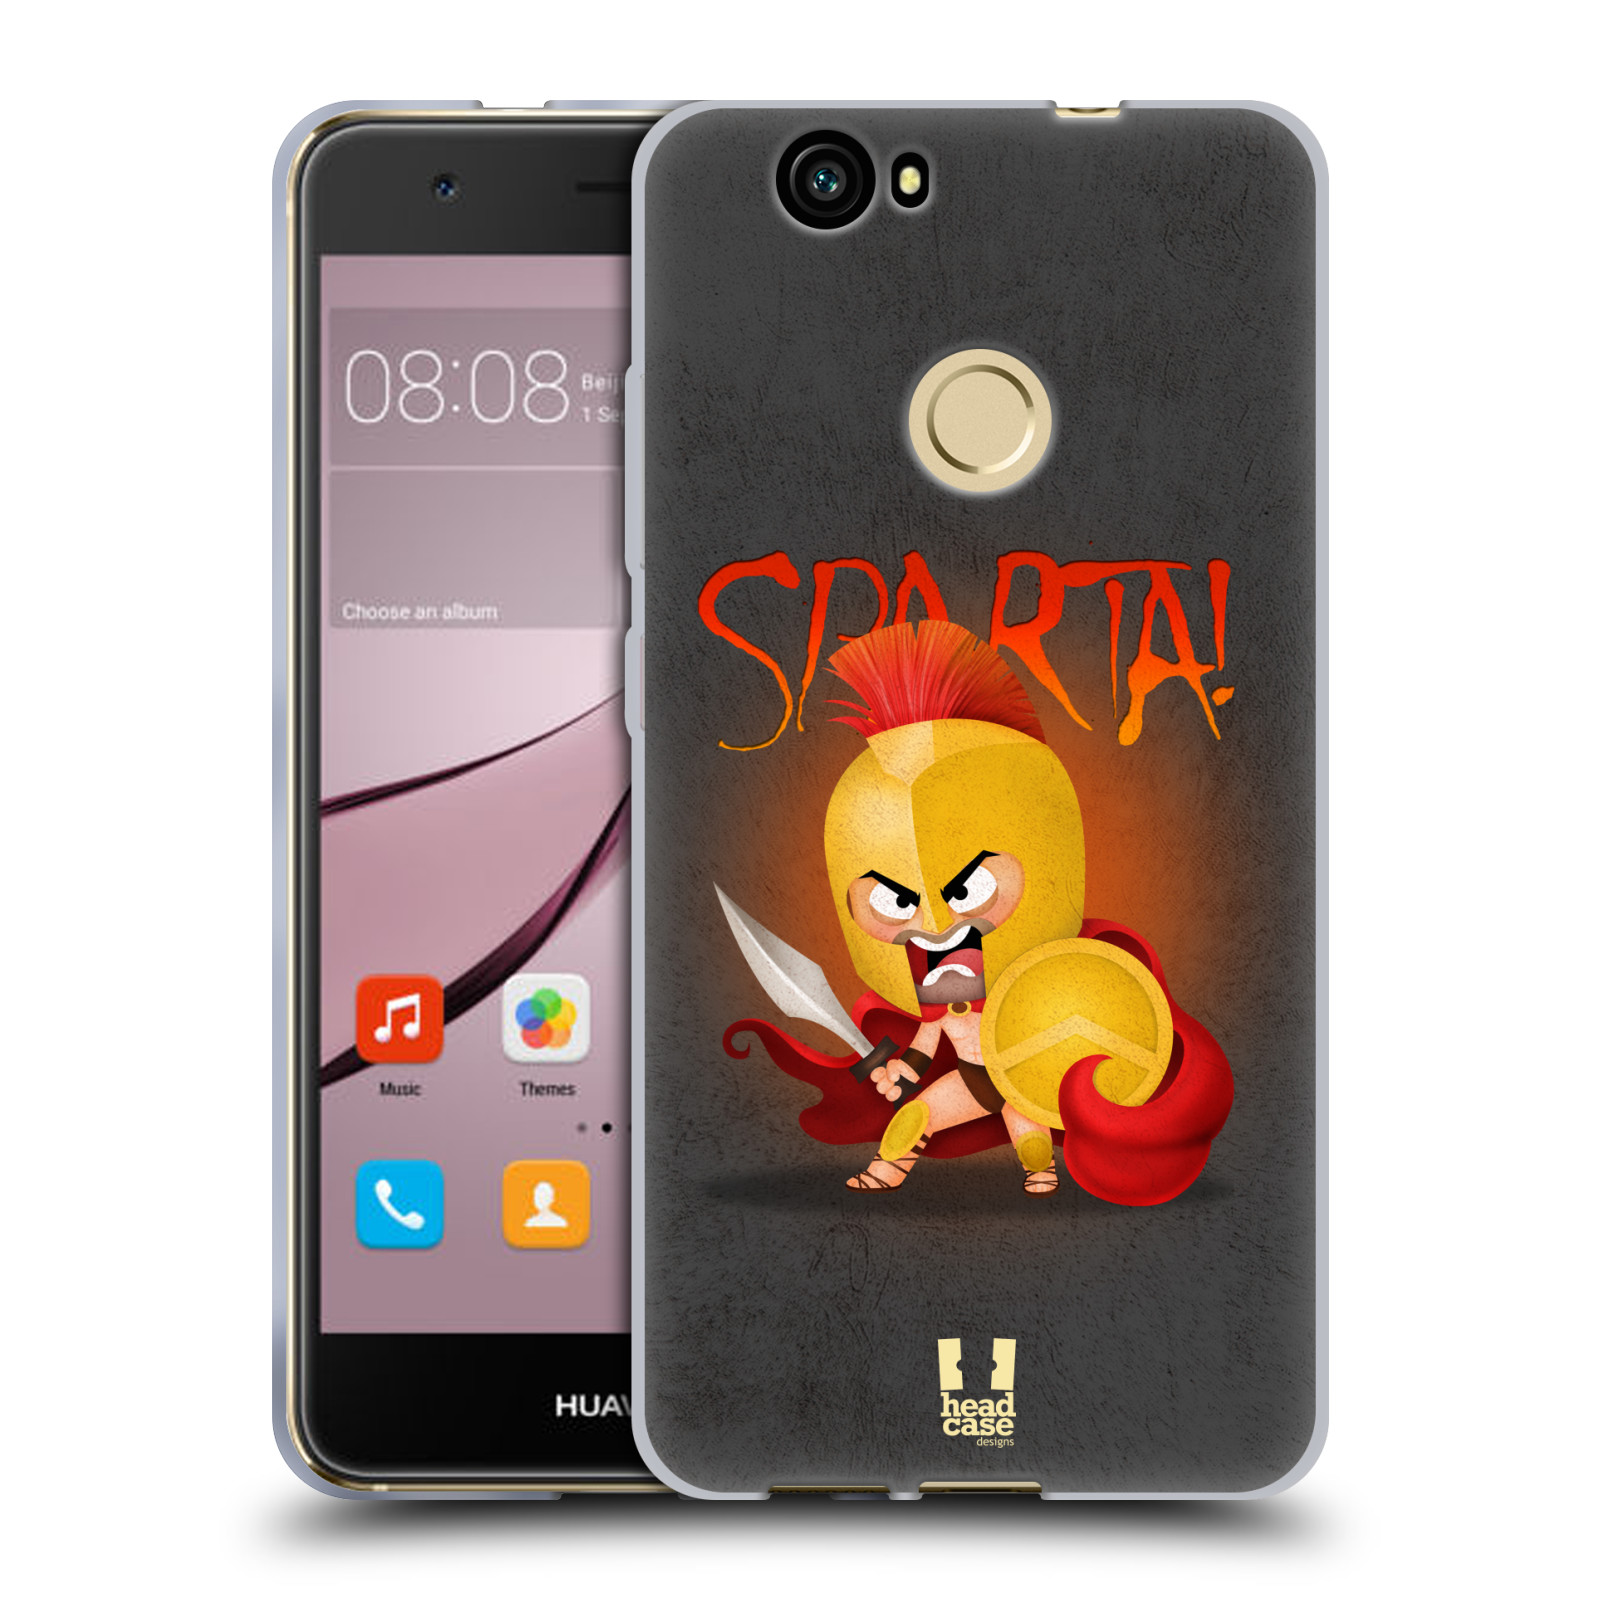 HEAD-CASE-DESIGNS-PICCOLI-SPARTANI-COVER-MORBIDA-IN-GEL-PER-HUAWEI-NOVA